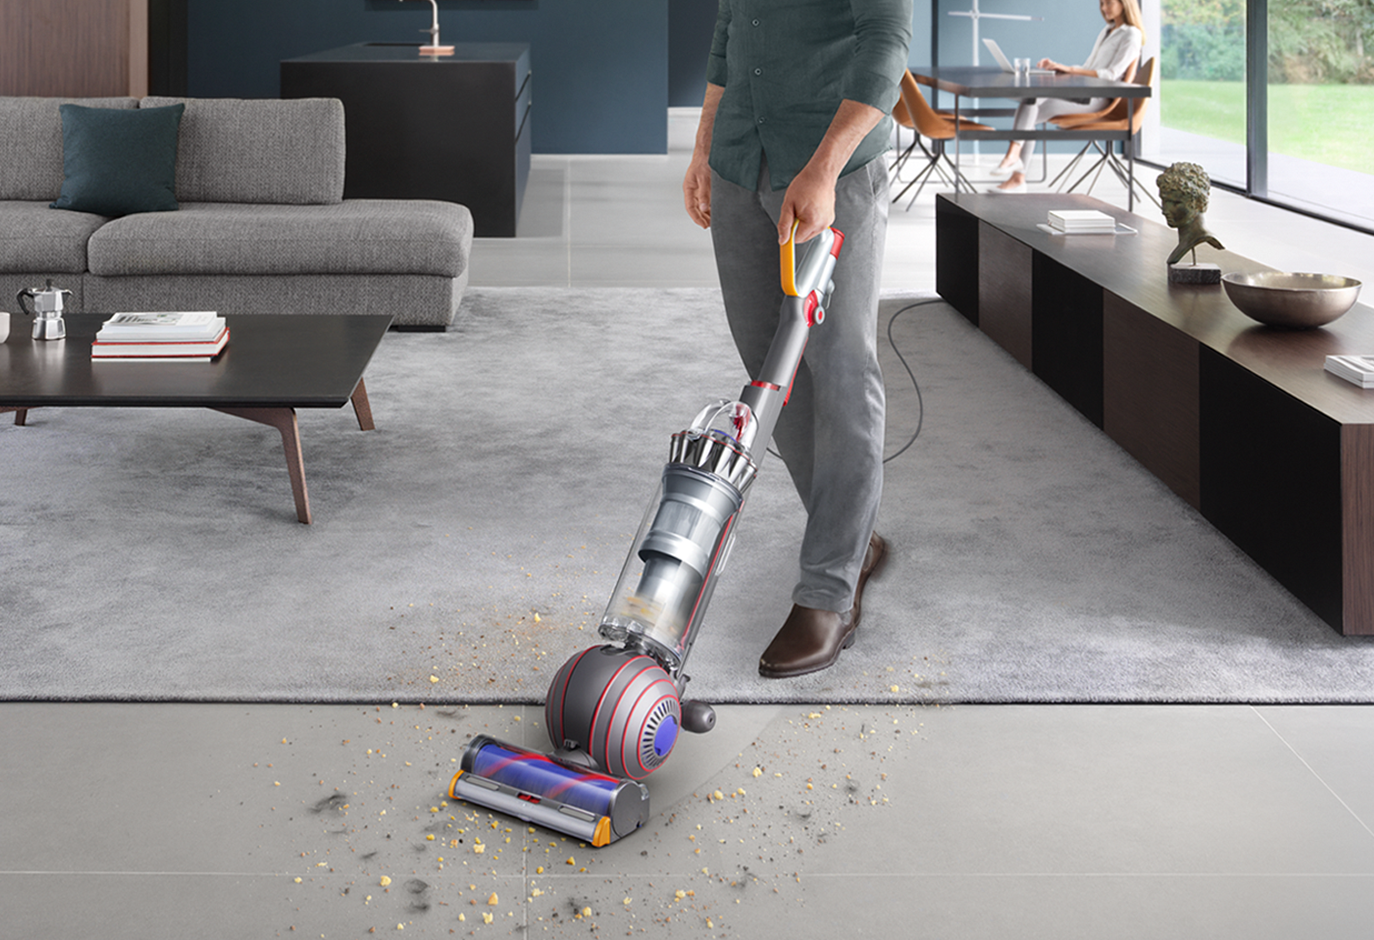 Full-size vacuums - Engineered to clean across all floor types